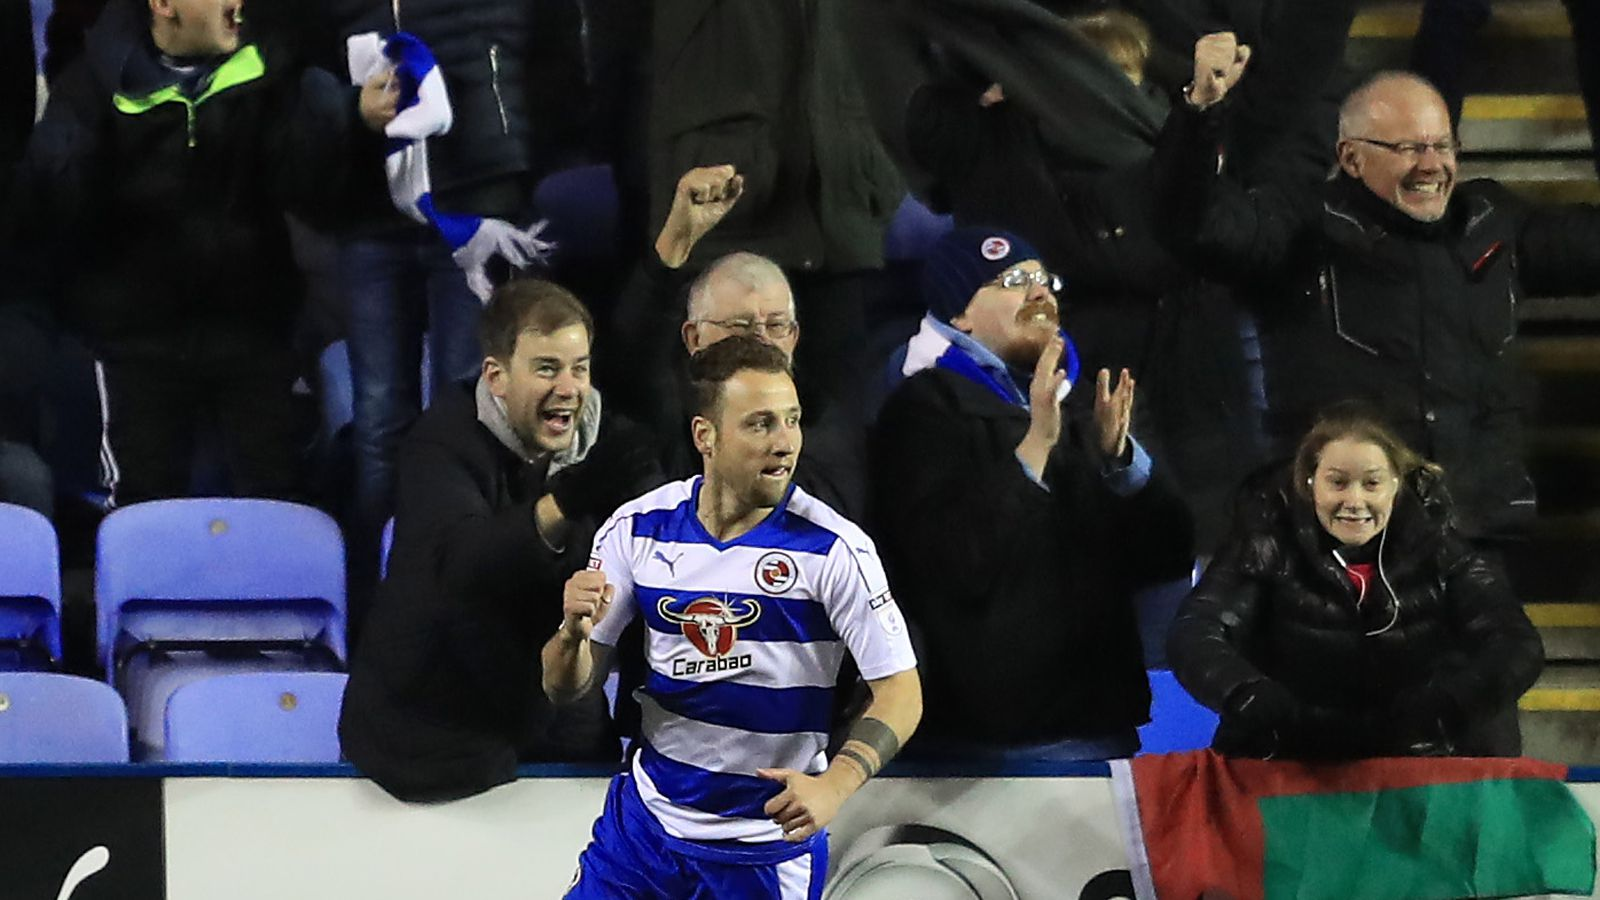 Roy Beerens: My Reading FC Player Of The Month For February - The Tilehurst End